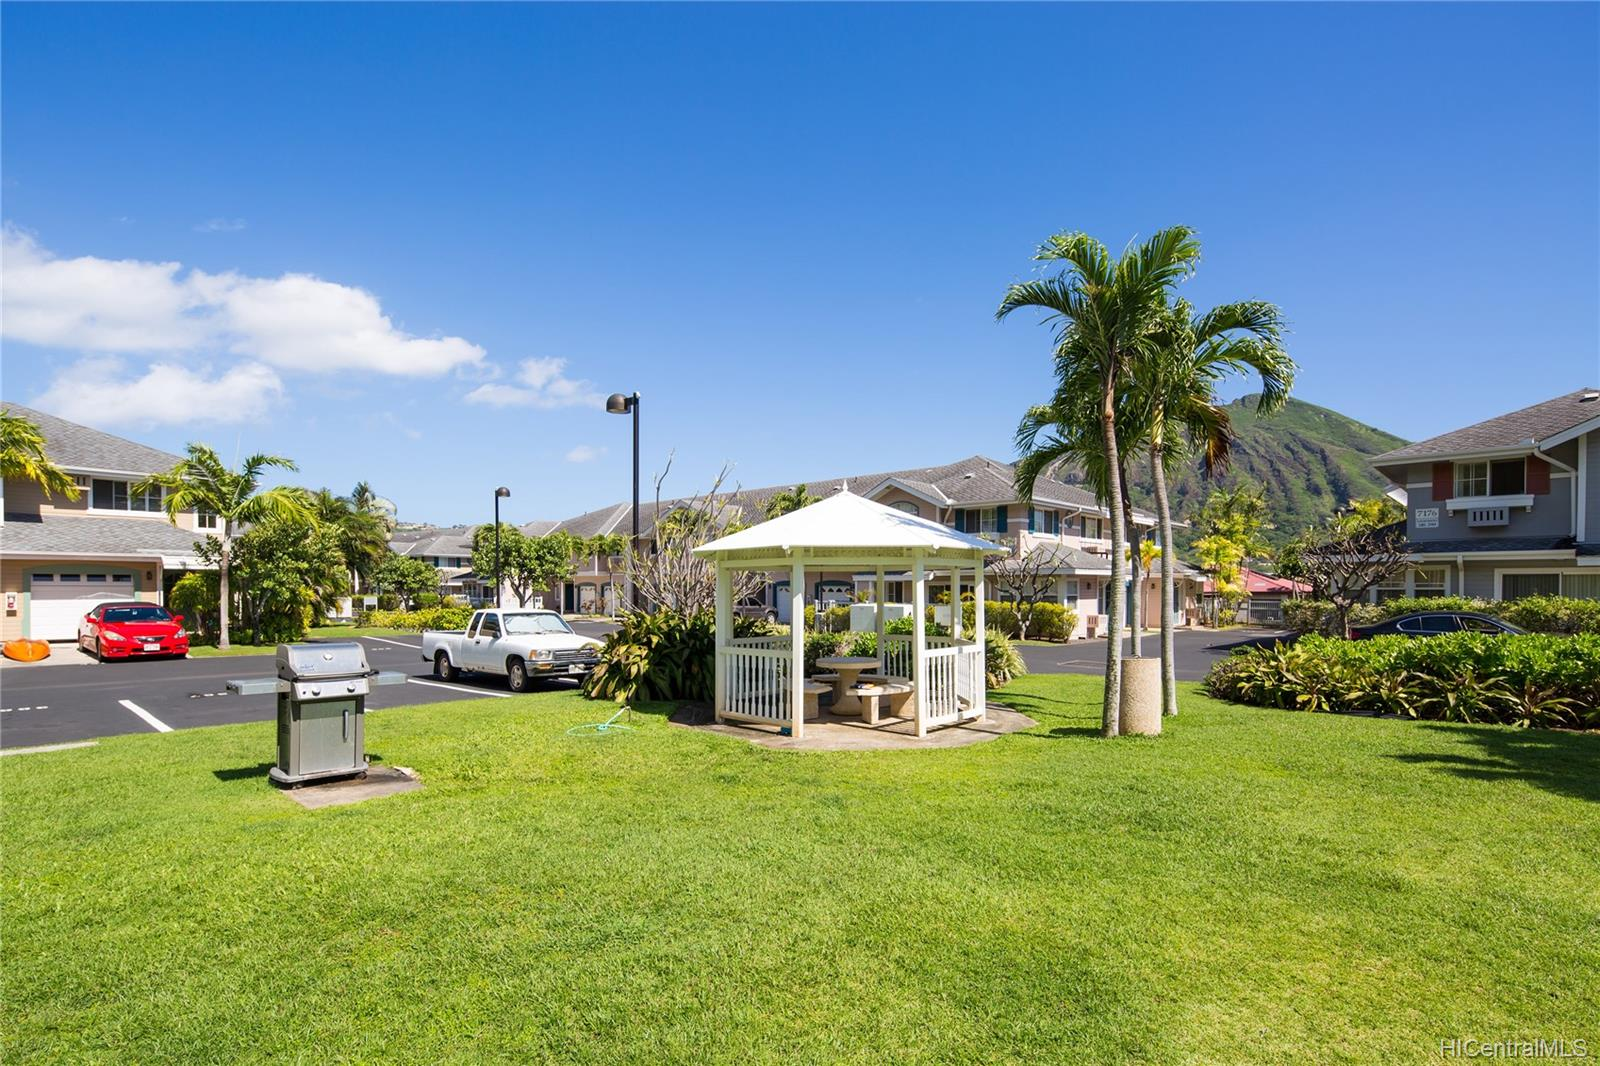 7110 Hawaii Kai Drive townhouse # 46, Honolulu, Hawaii - photo 18 of 19